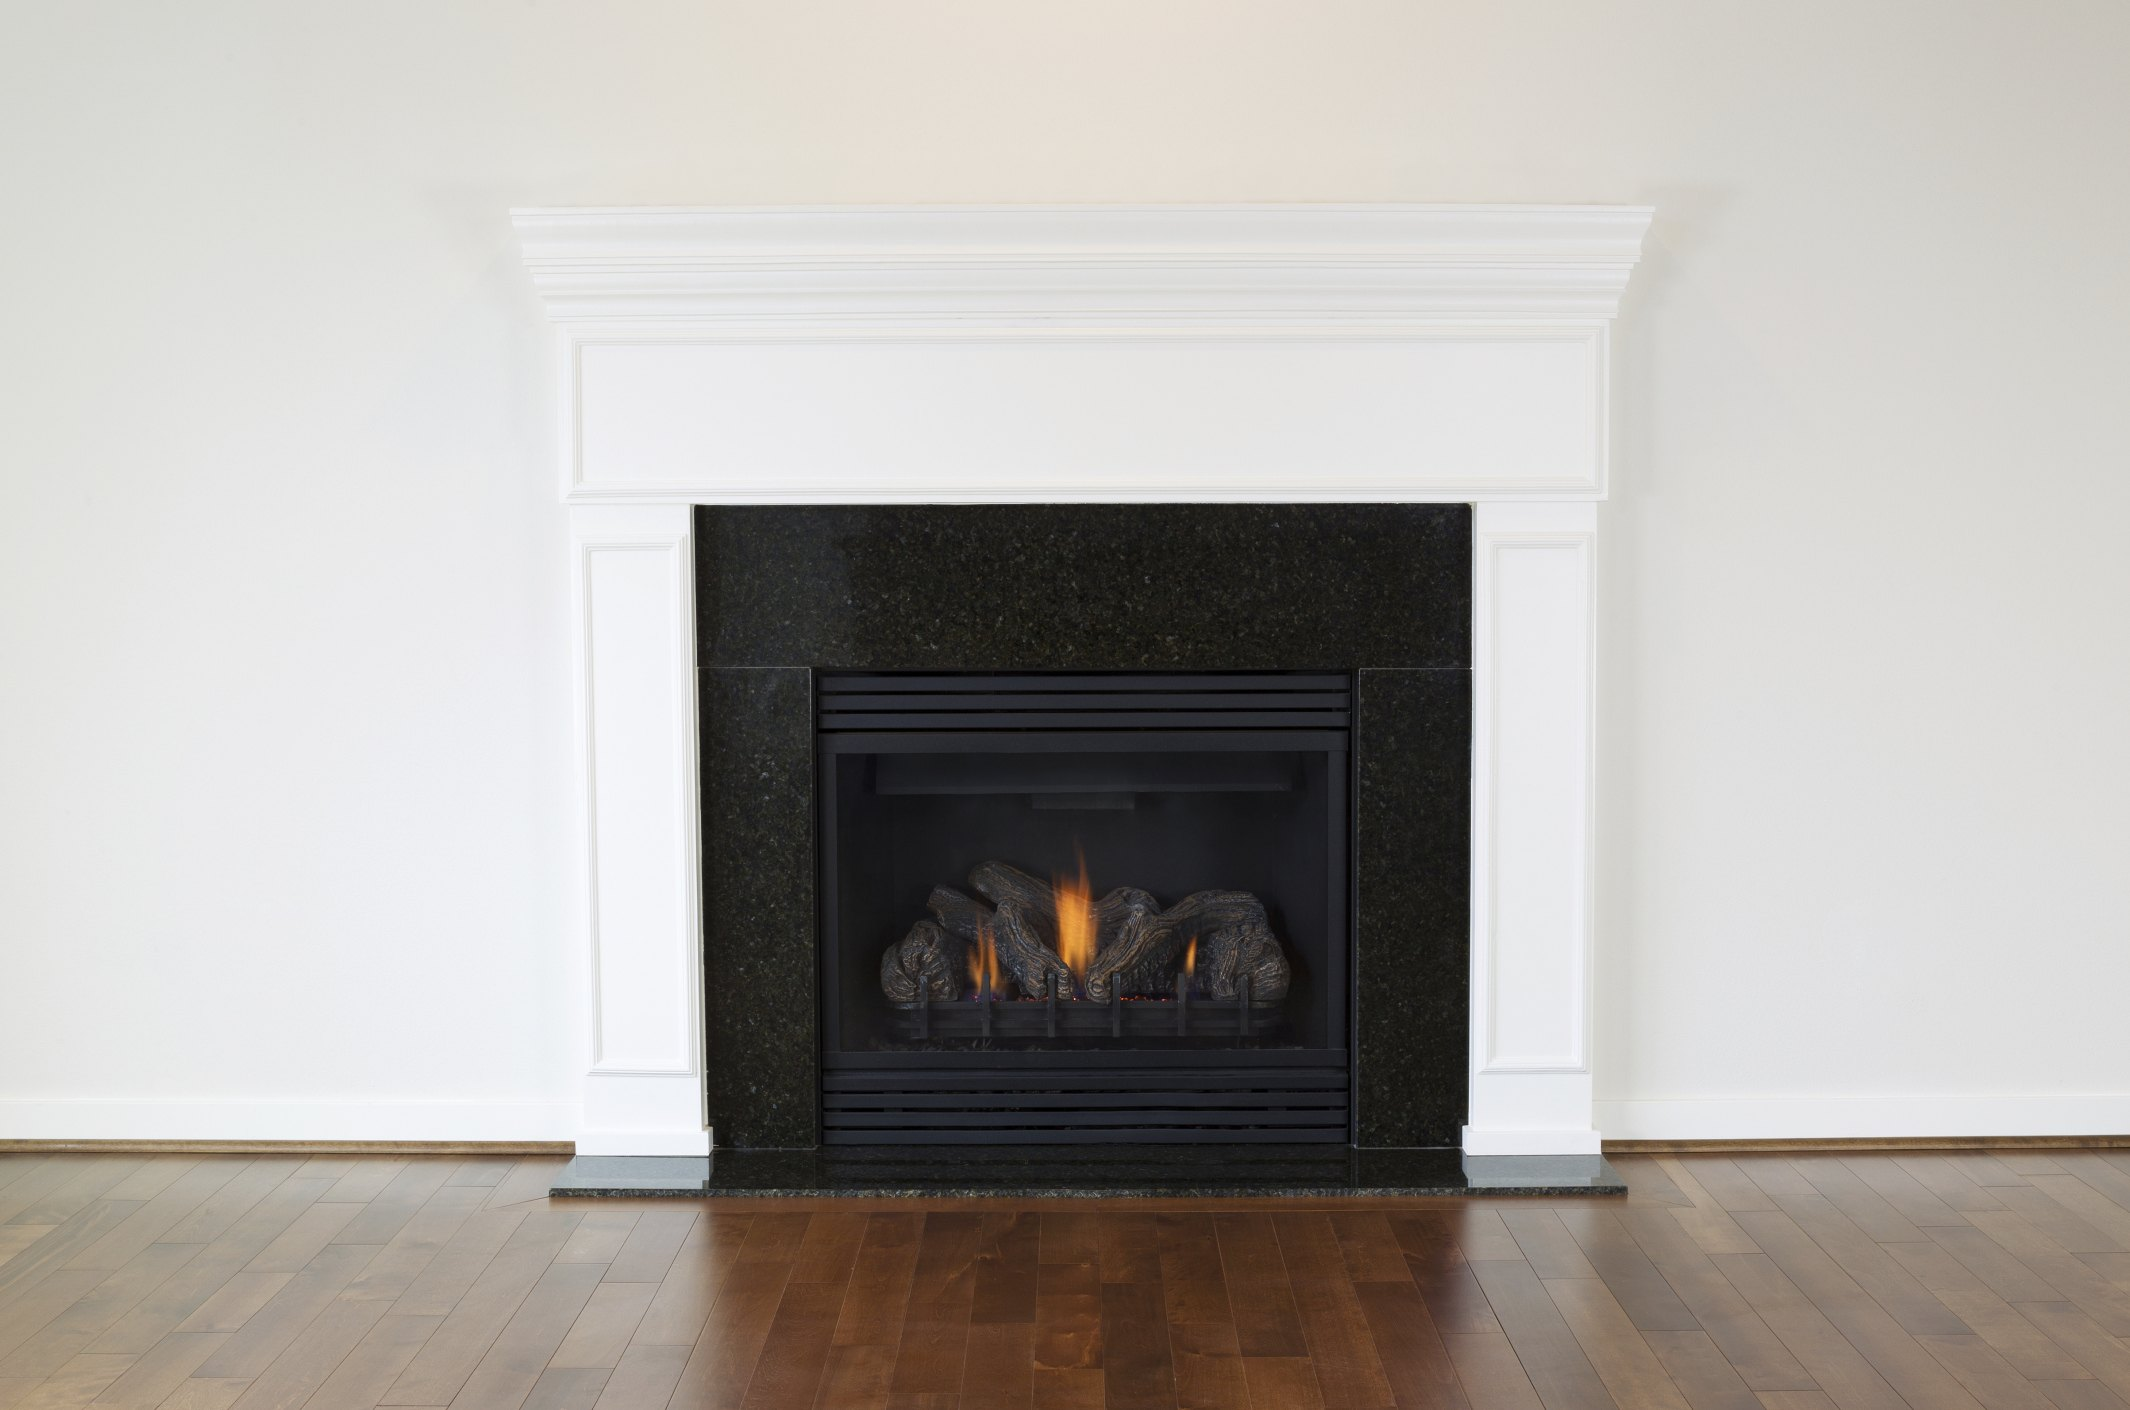 How To Trim Laminate Flooring Around A Fireplace Ehow